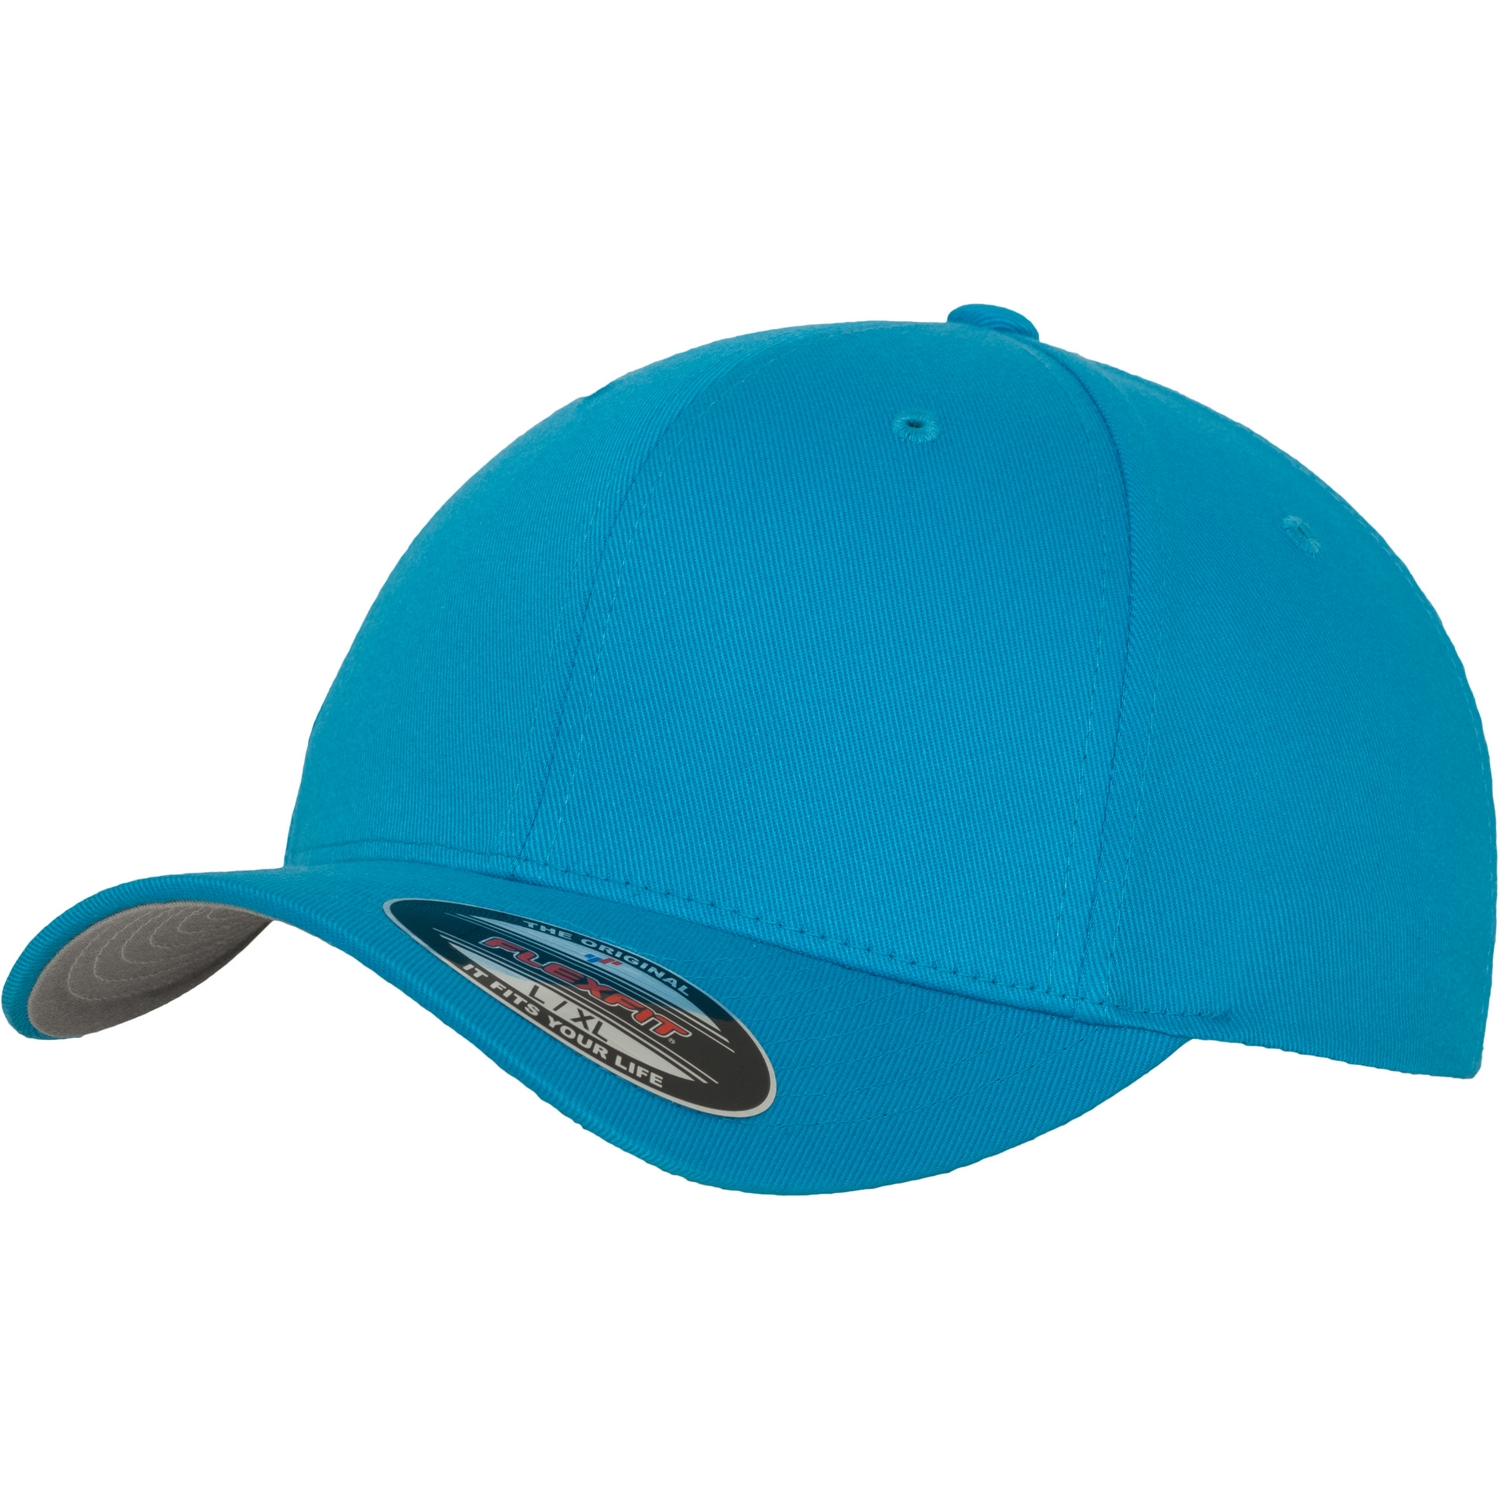 Yupoong mens flexfit fitted baseball cap ebay